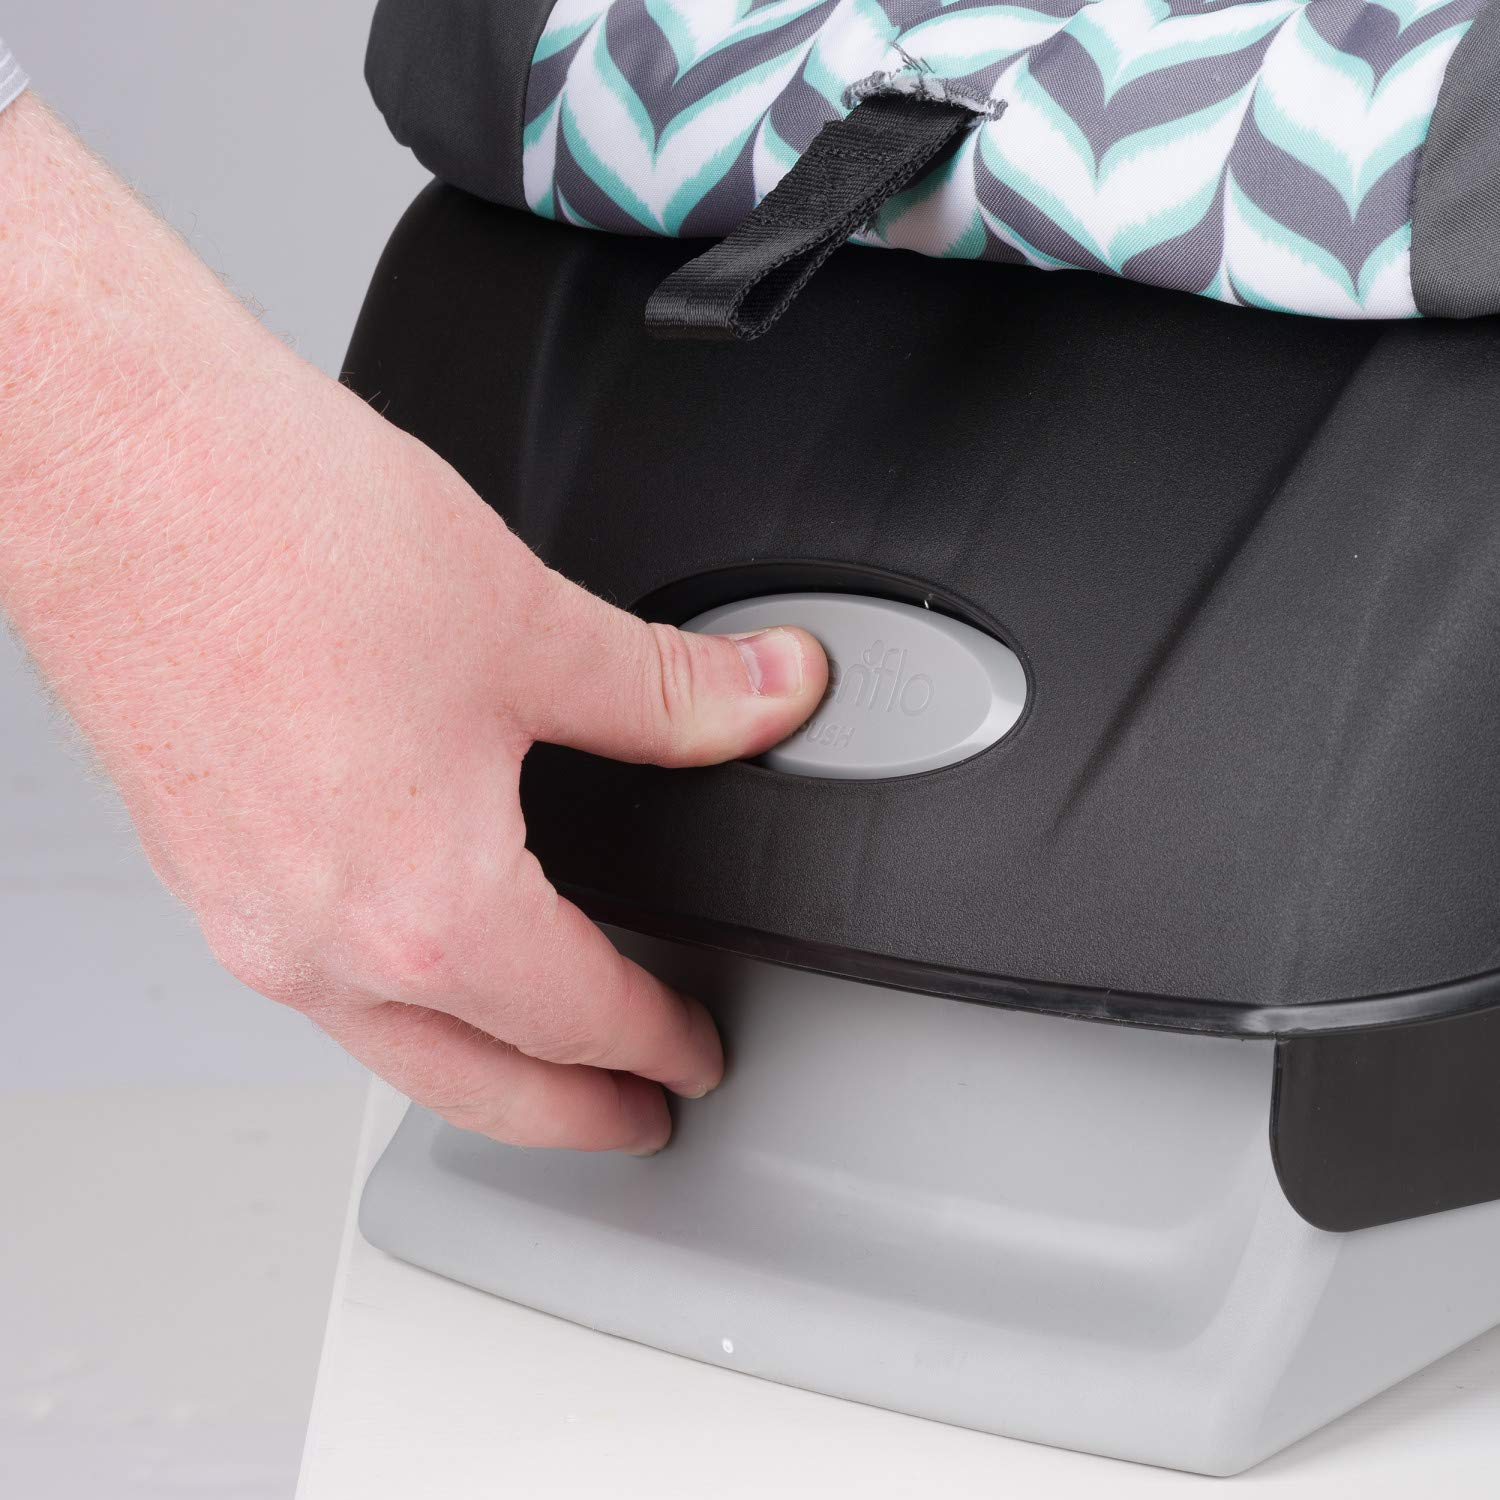 Evenflo Vive Travel System with Embrace Infant Car Seat, Spearmint Spree by Evenflo (Image #6)